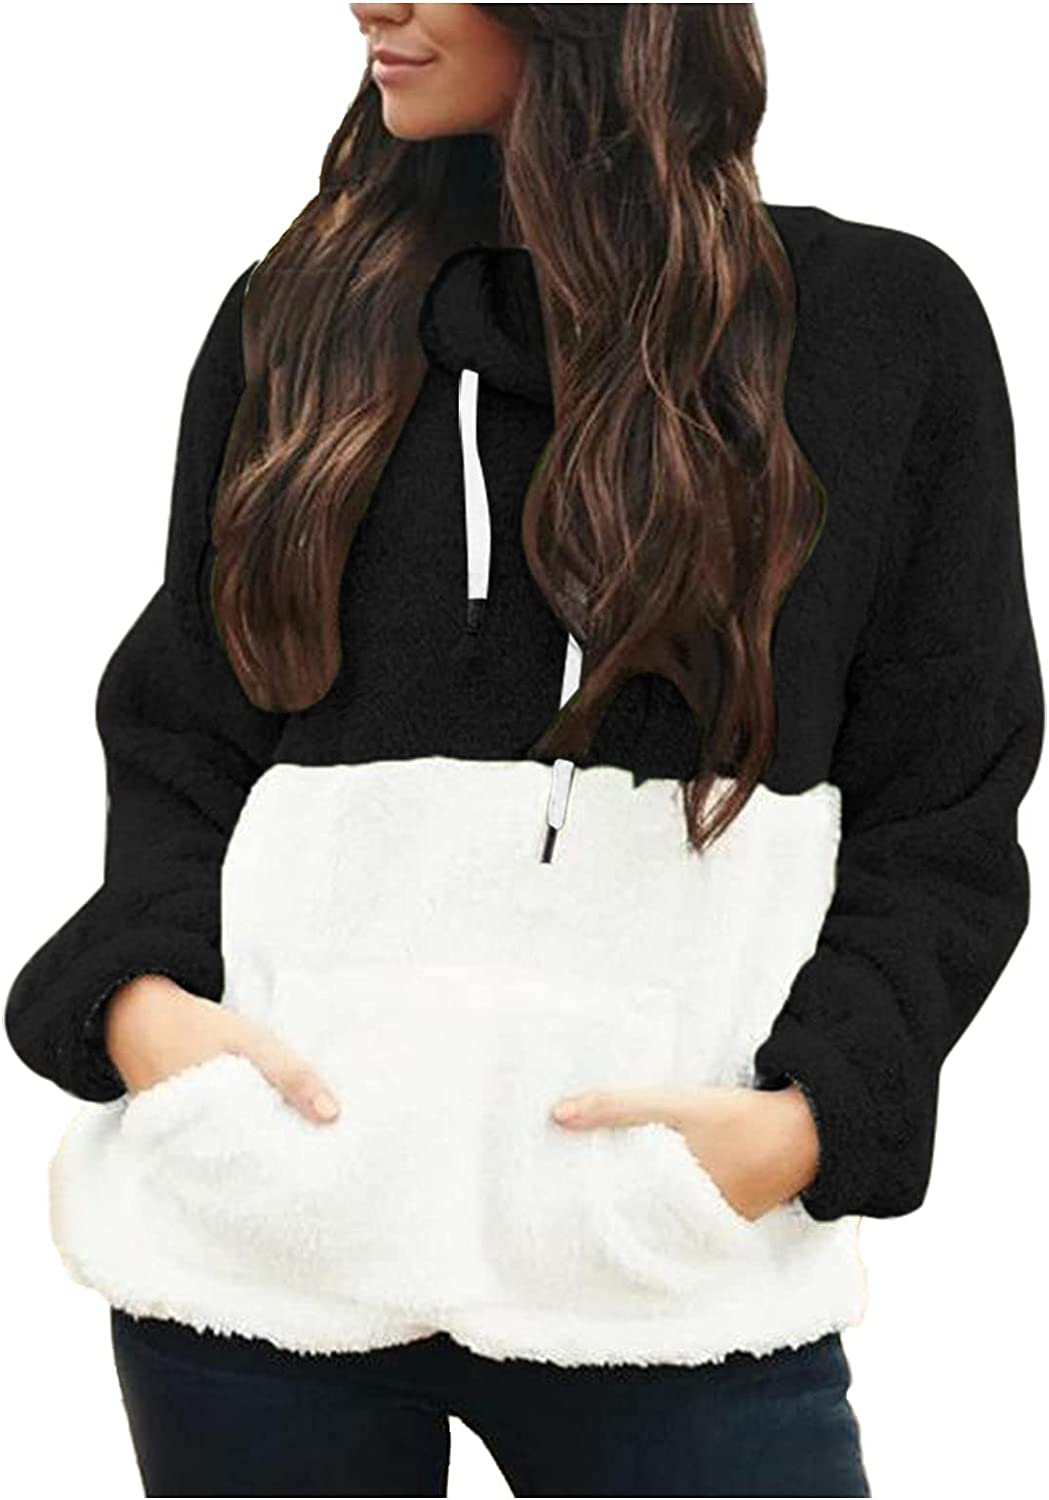 Euone_Clothes Hoodies Pullover for Women, Women's Long Sleeve Hooded Sweatshirt Warm Pocket Hoodie Pullover